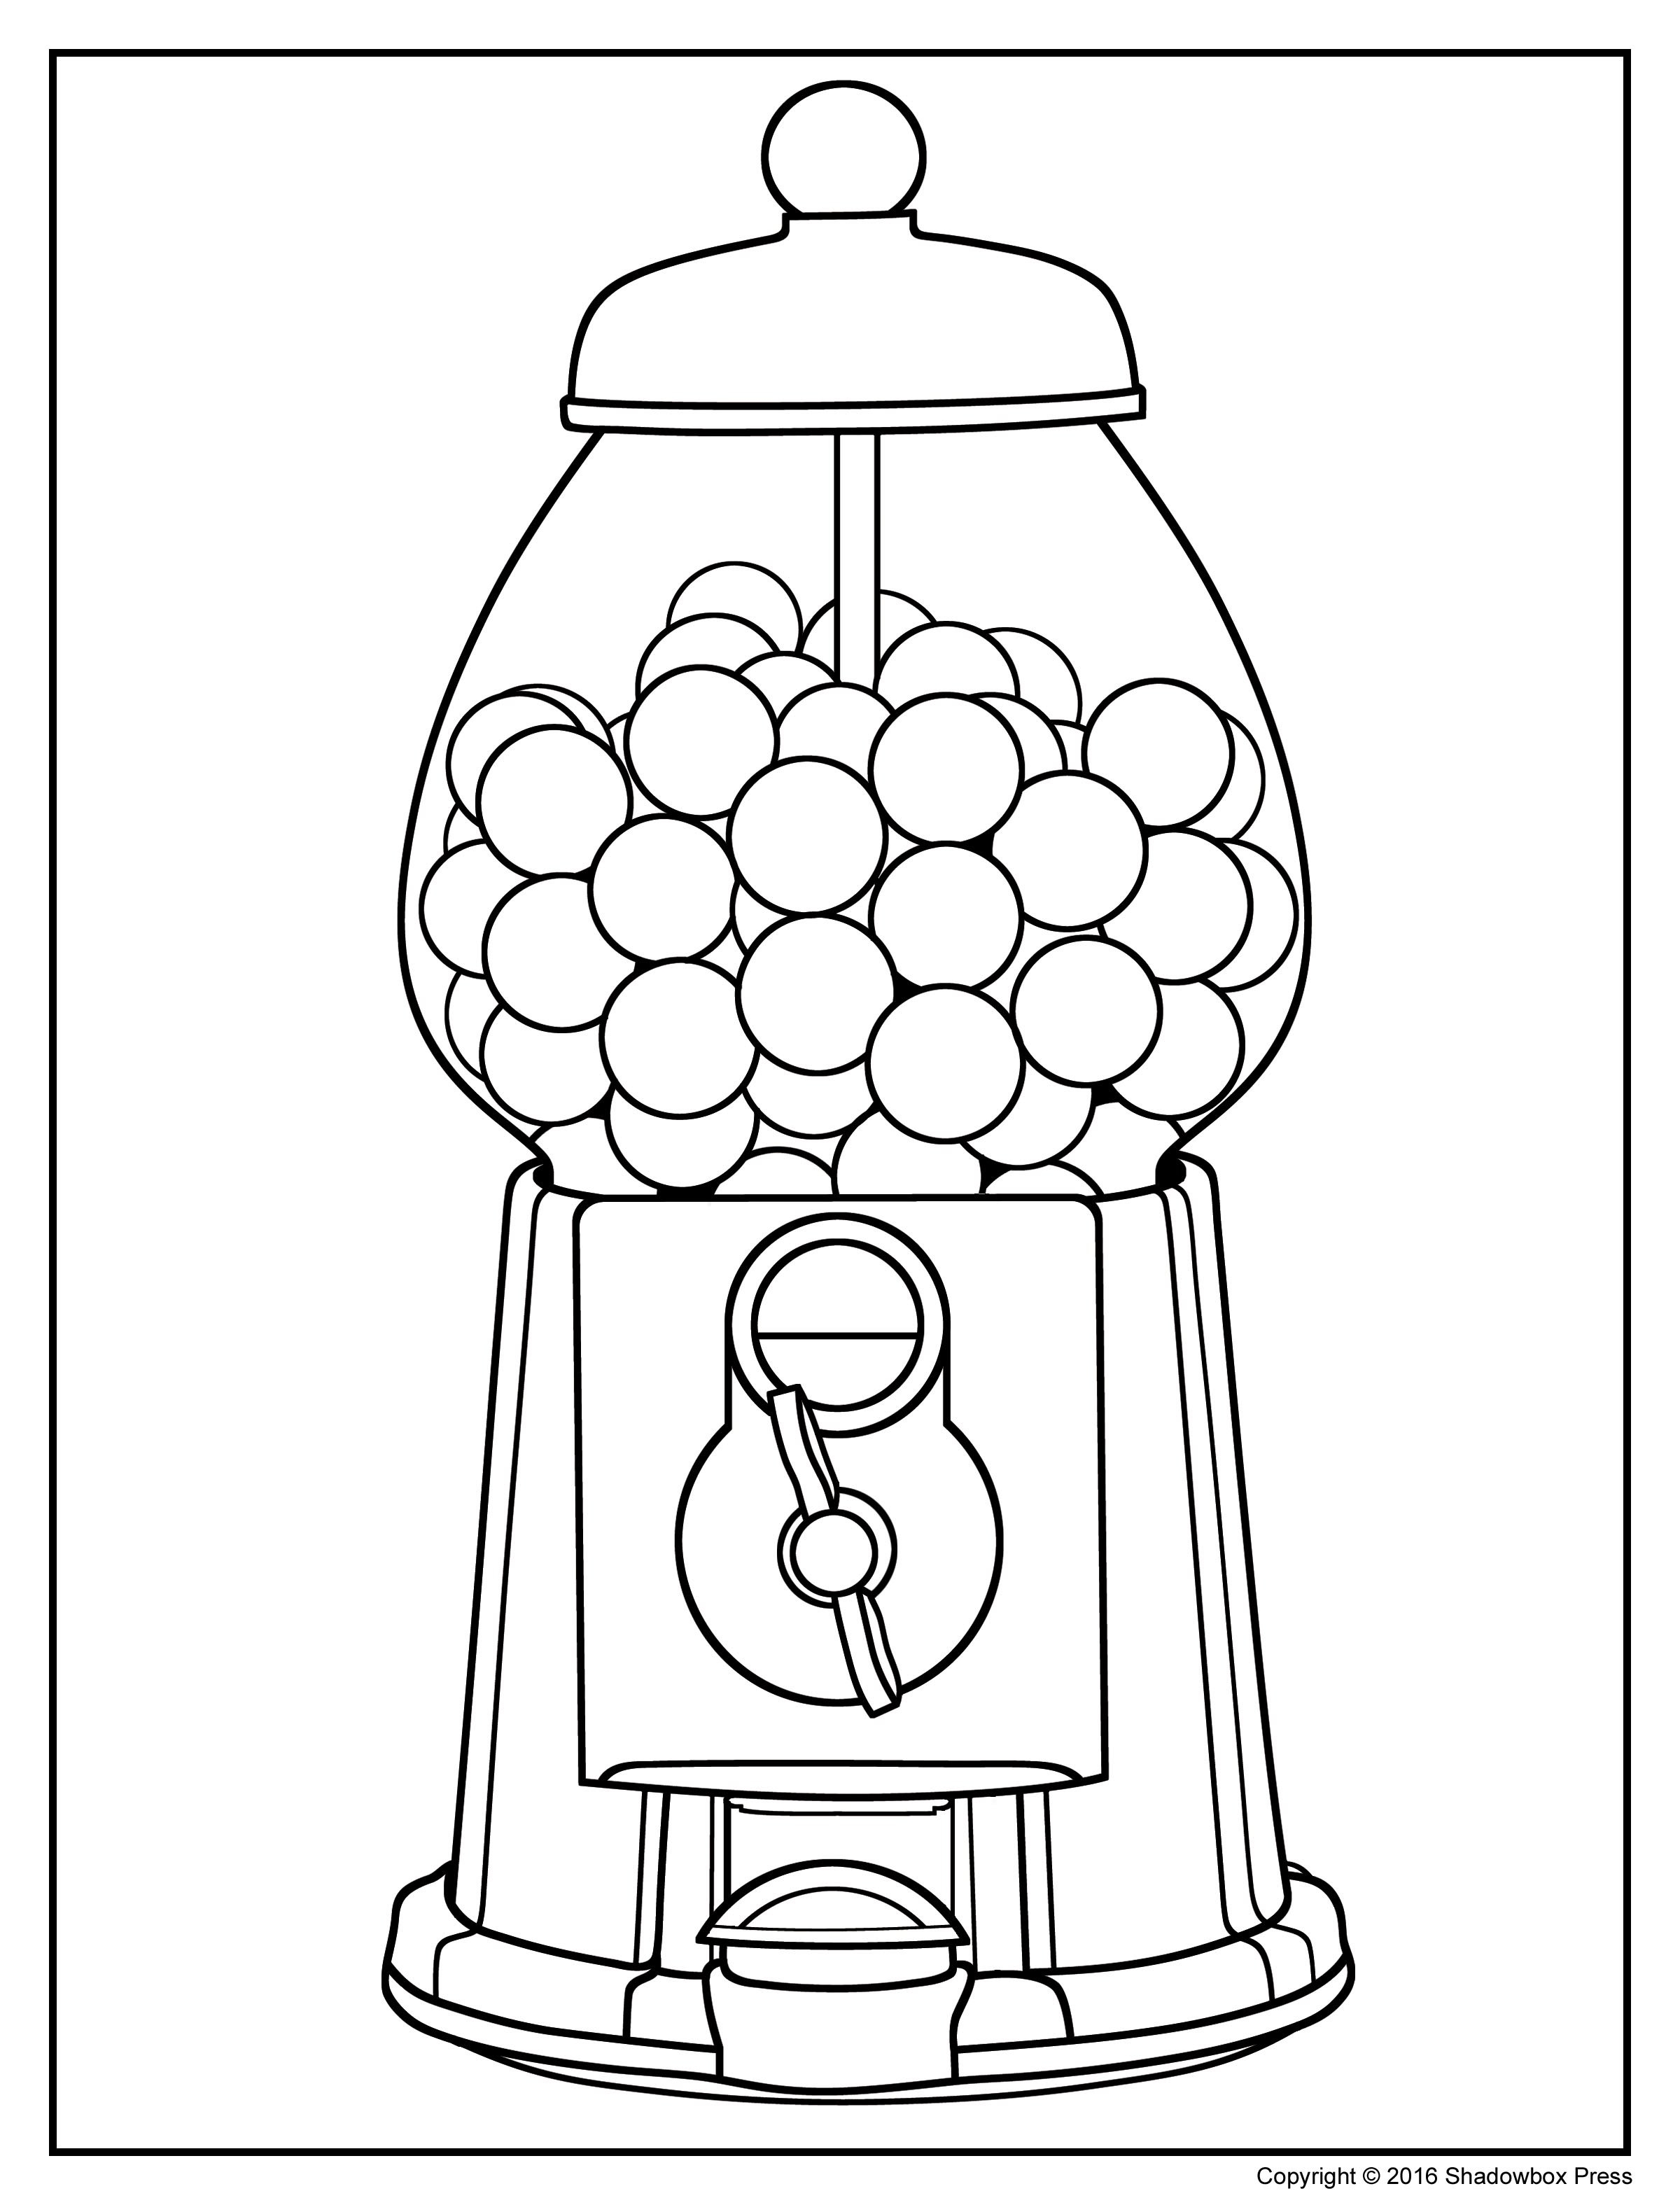 Free Downloadable Coloring Pages For Adults At